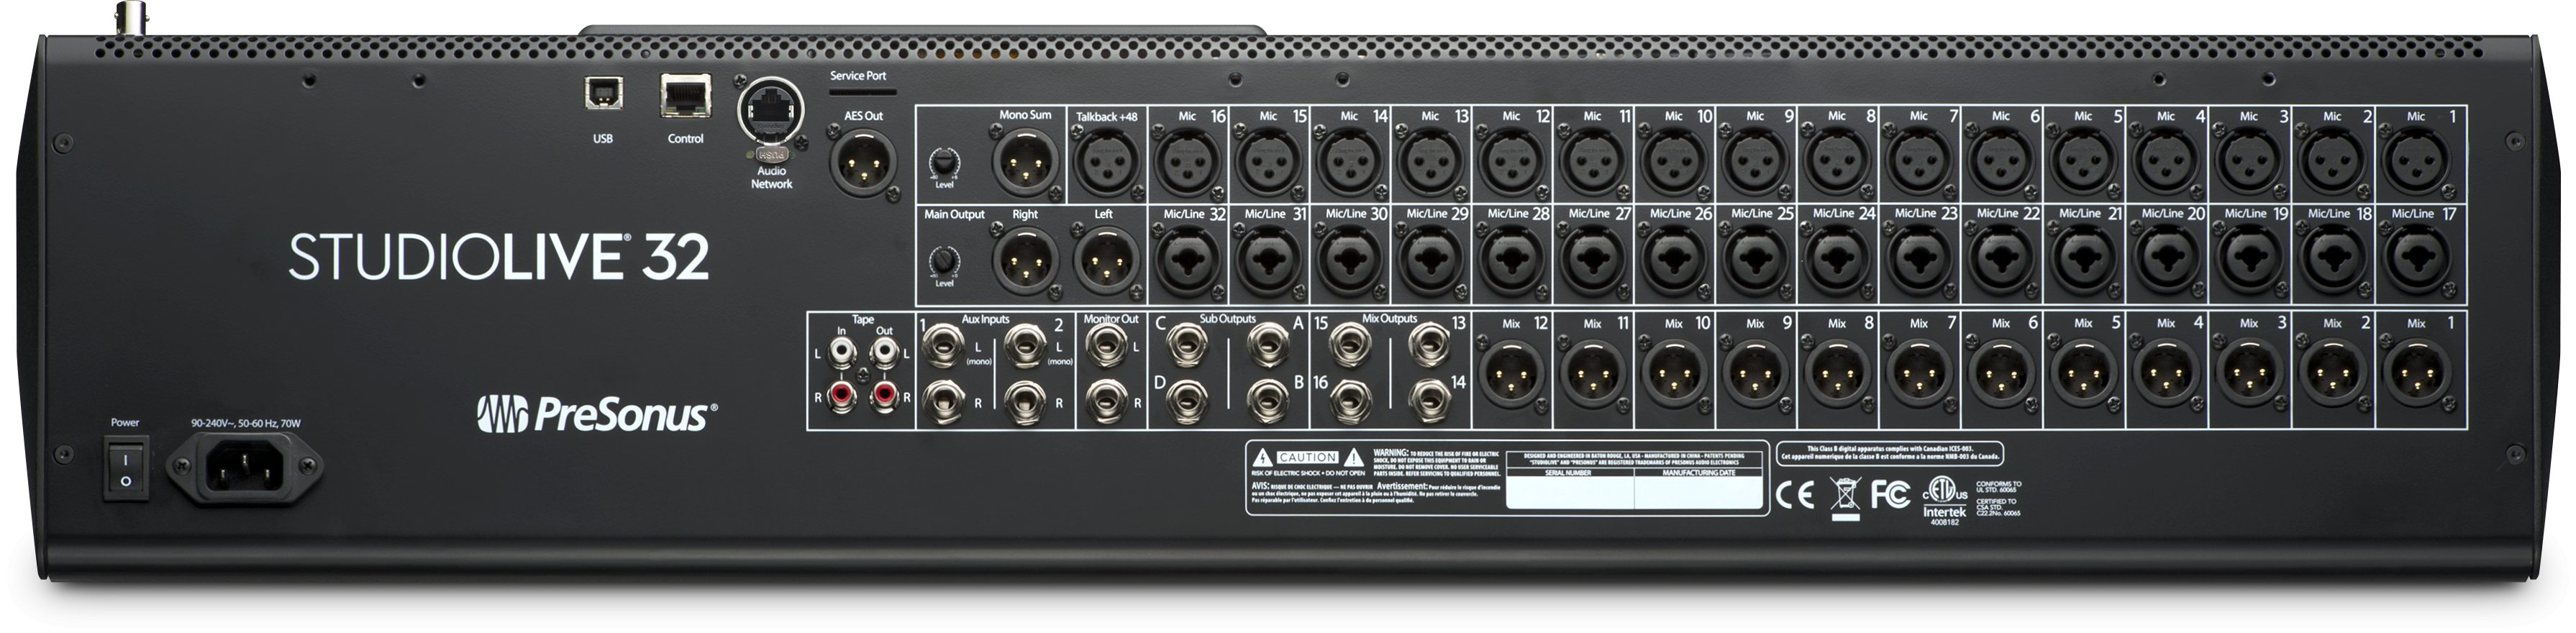 presonus-studiolive 32-back big